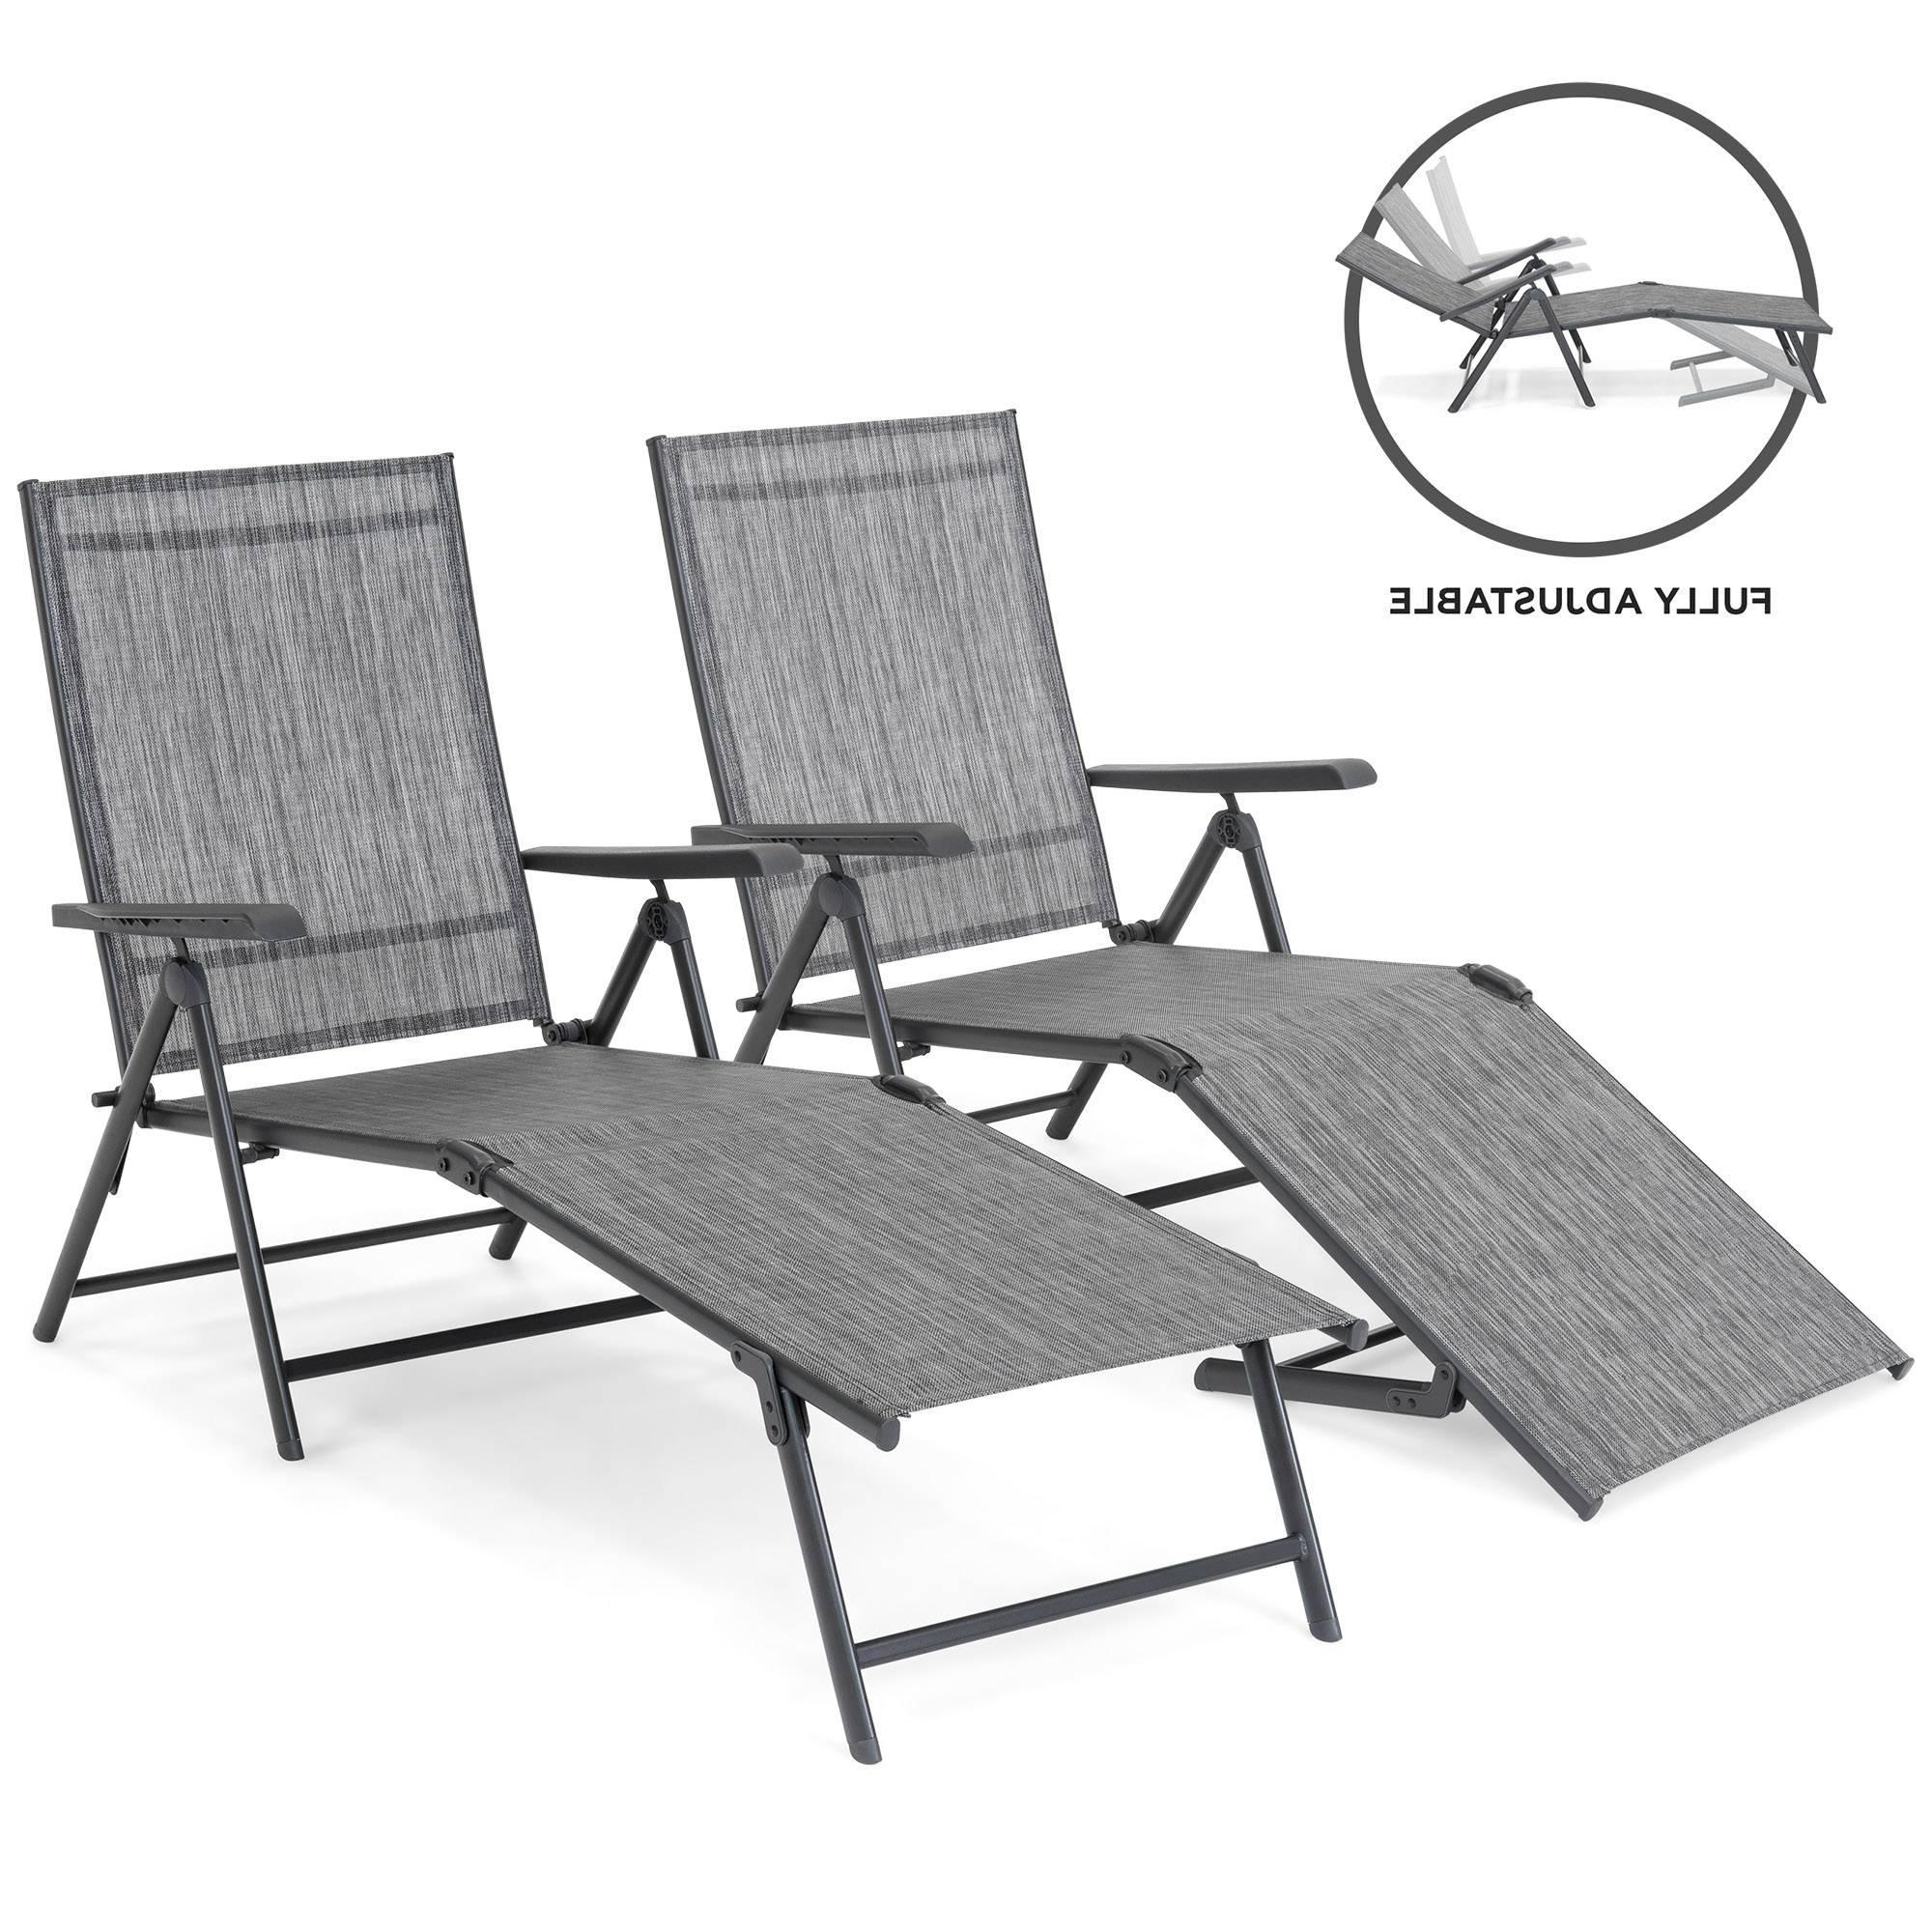 Best Choice Products Set Of 2 Outdoor Adjustable Folding Chaise Reclining  Lounge Chairs For Patio, Poolside, Deck W/ Rust Resistant Steel Frame, In Popular Outdoor Cart Wheel Adjustable Chaise Lounge Chairs (View 3 of 25)